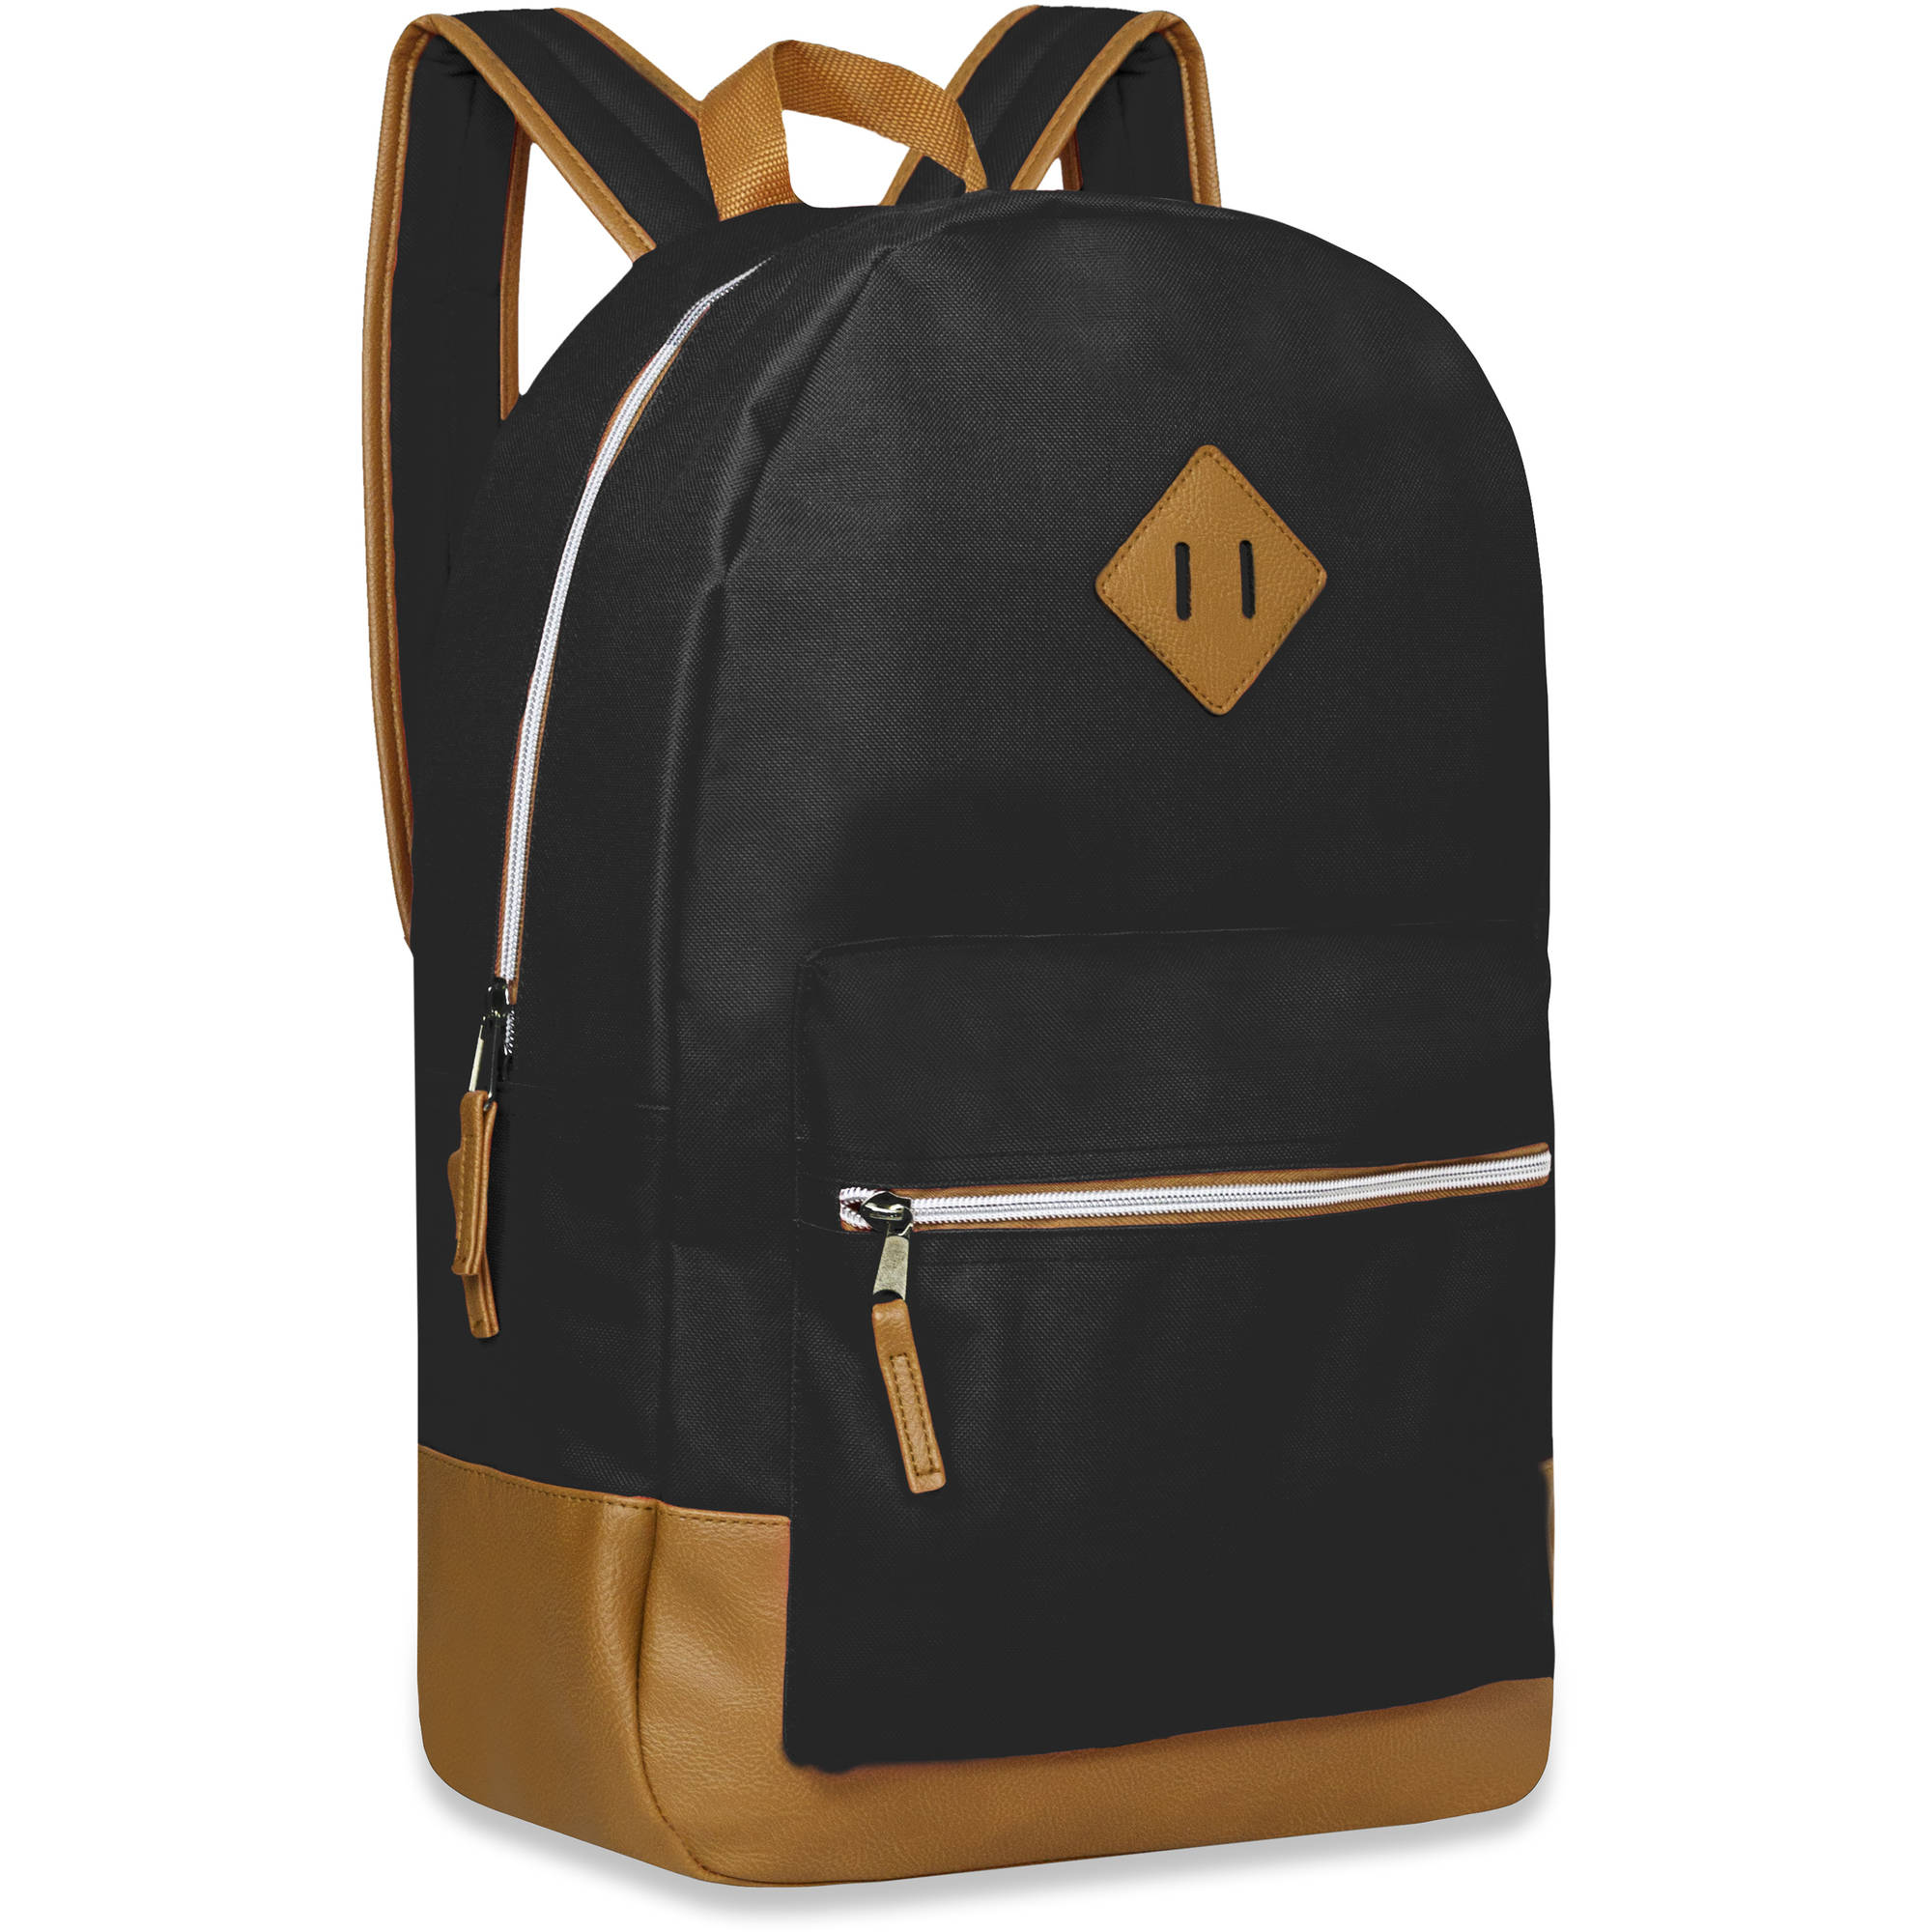 17.5 Inch Classic Backpack with Reinforced Suede Bottom and Comfort Padding